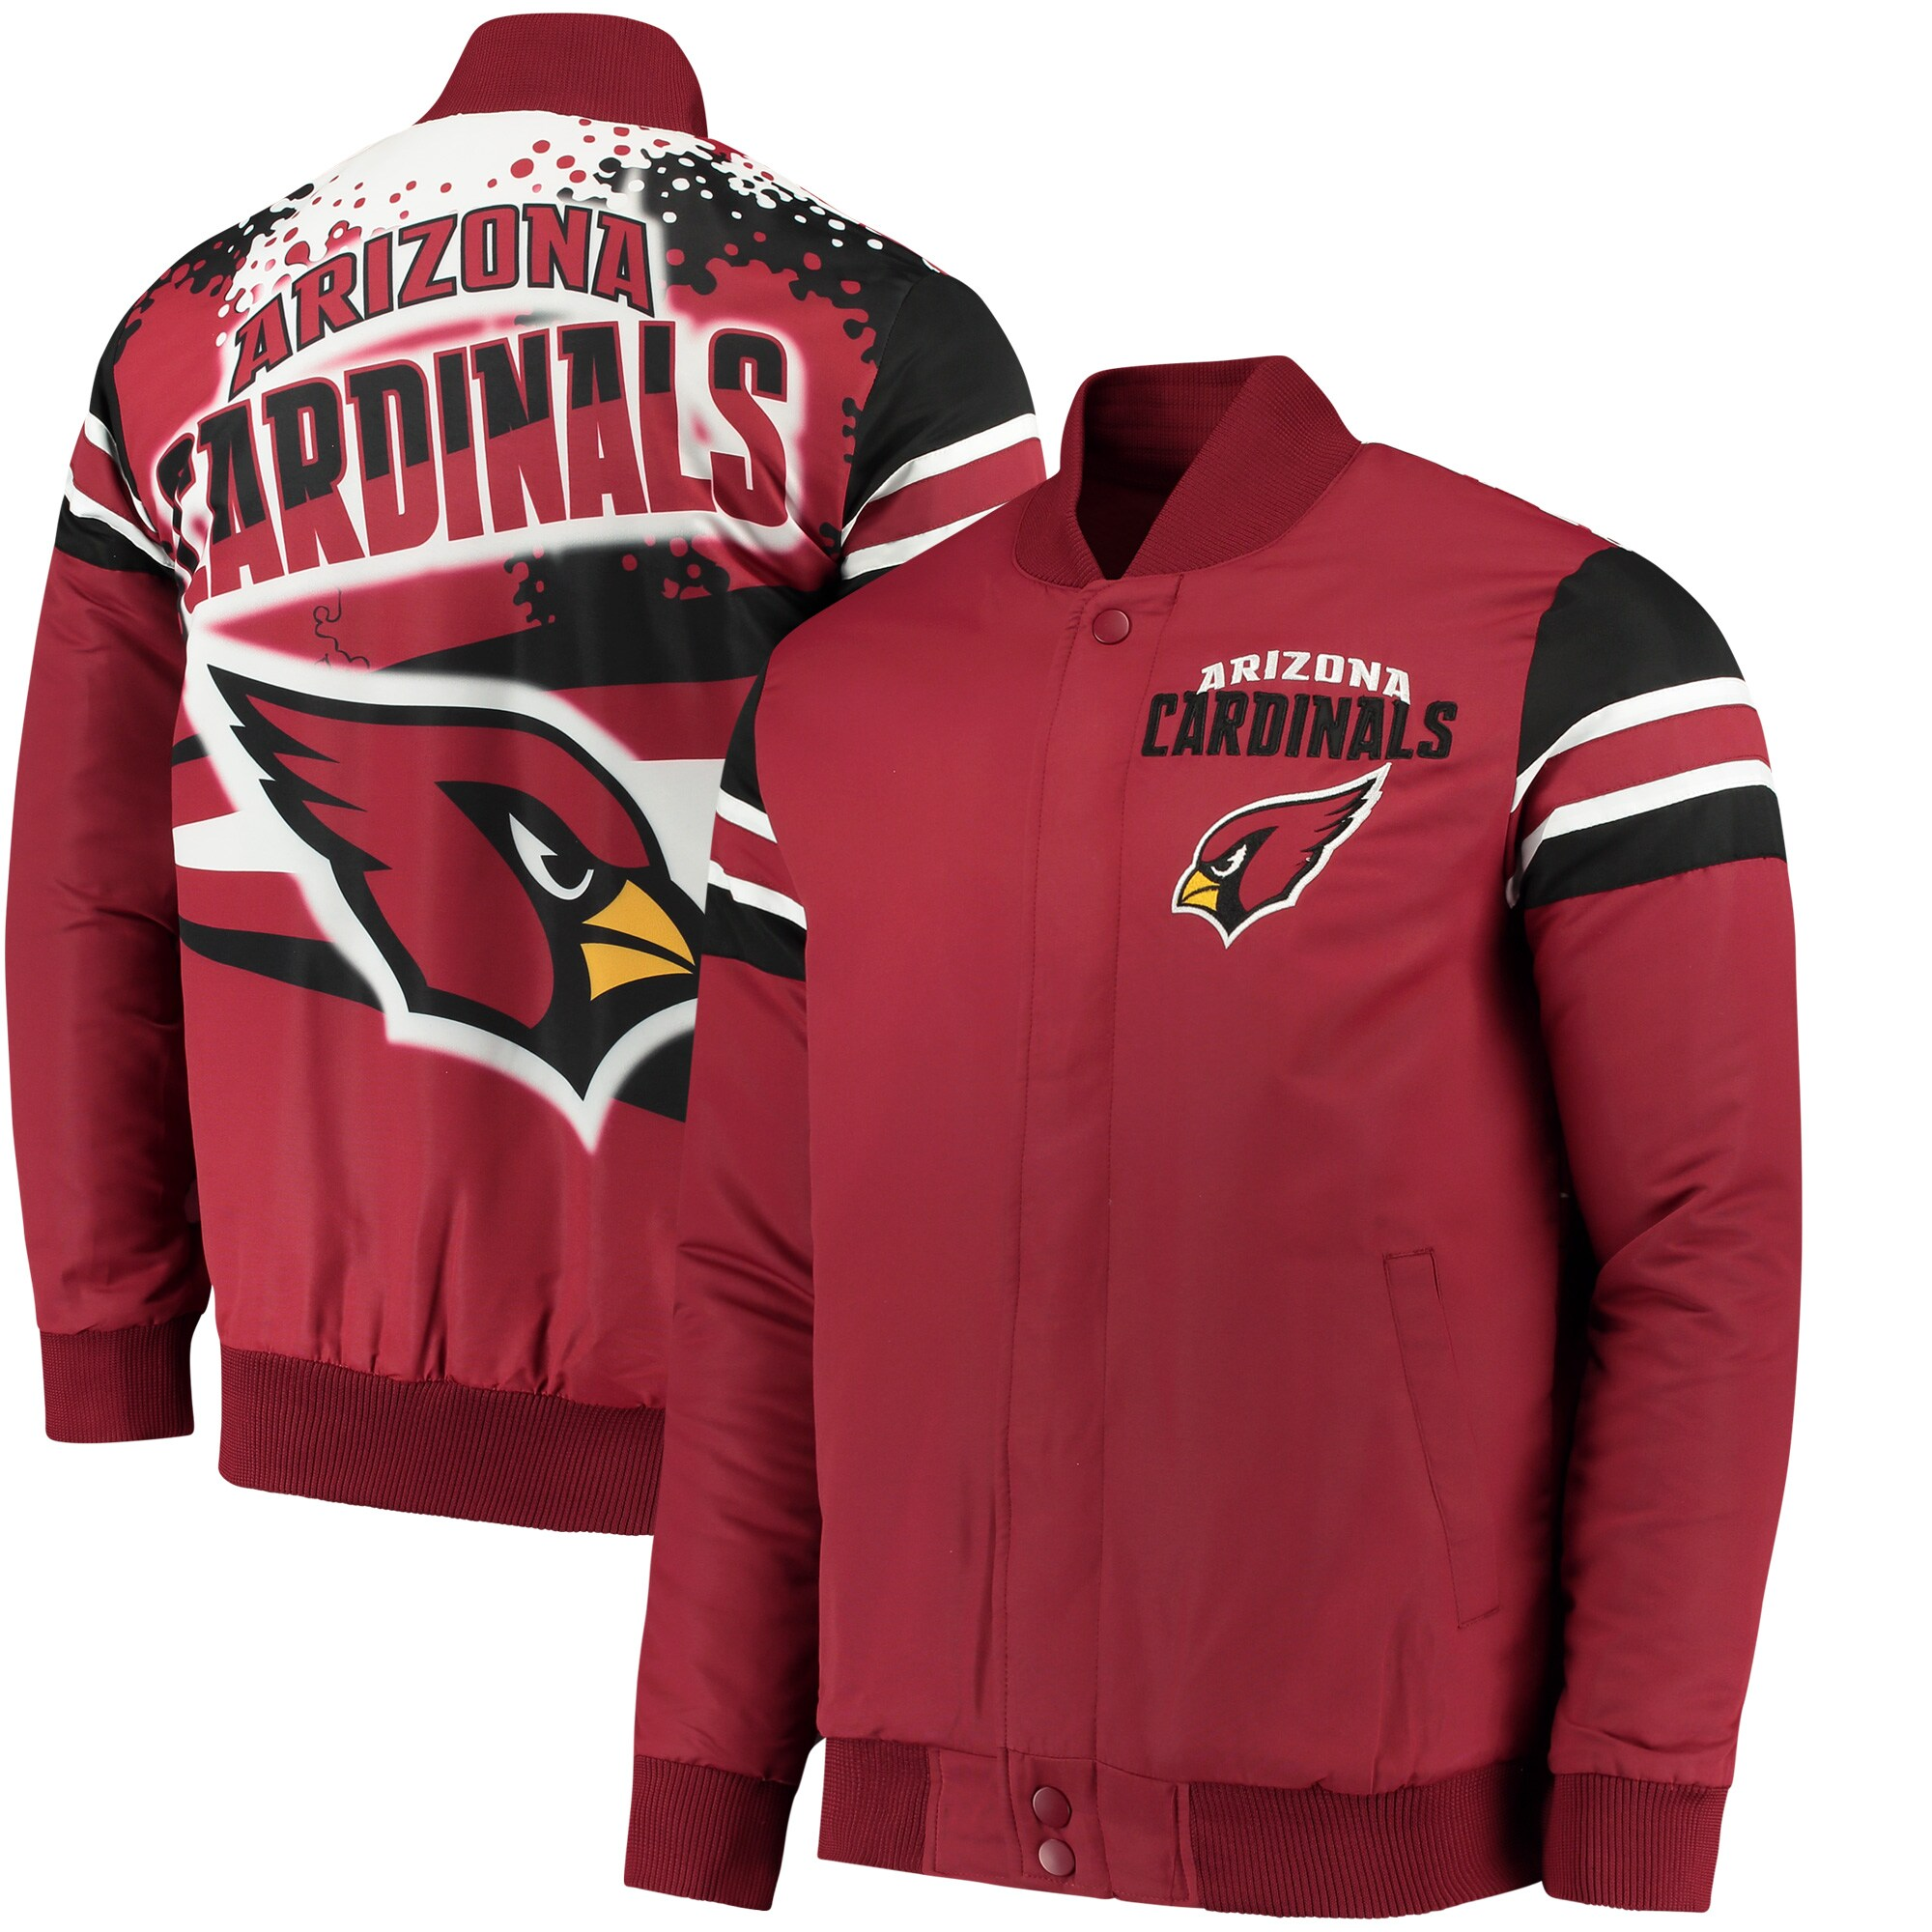 Arizona Cardinals G-III Extreme Alpha Full-Snap Jacket - Cardinal